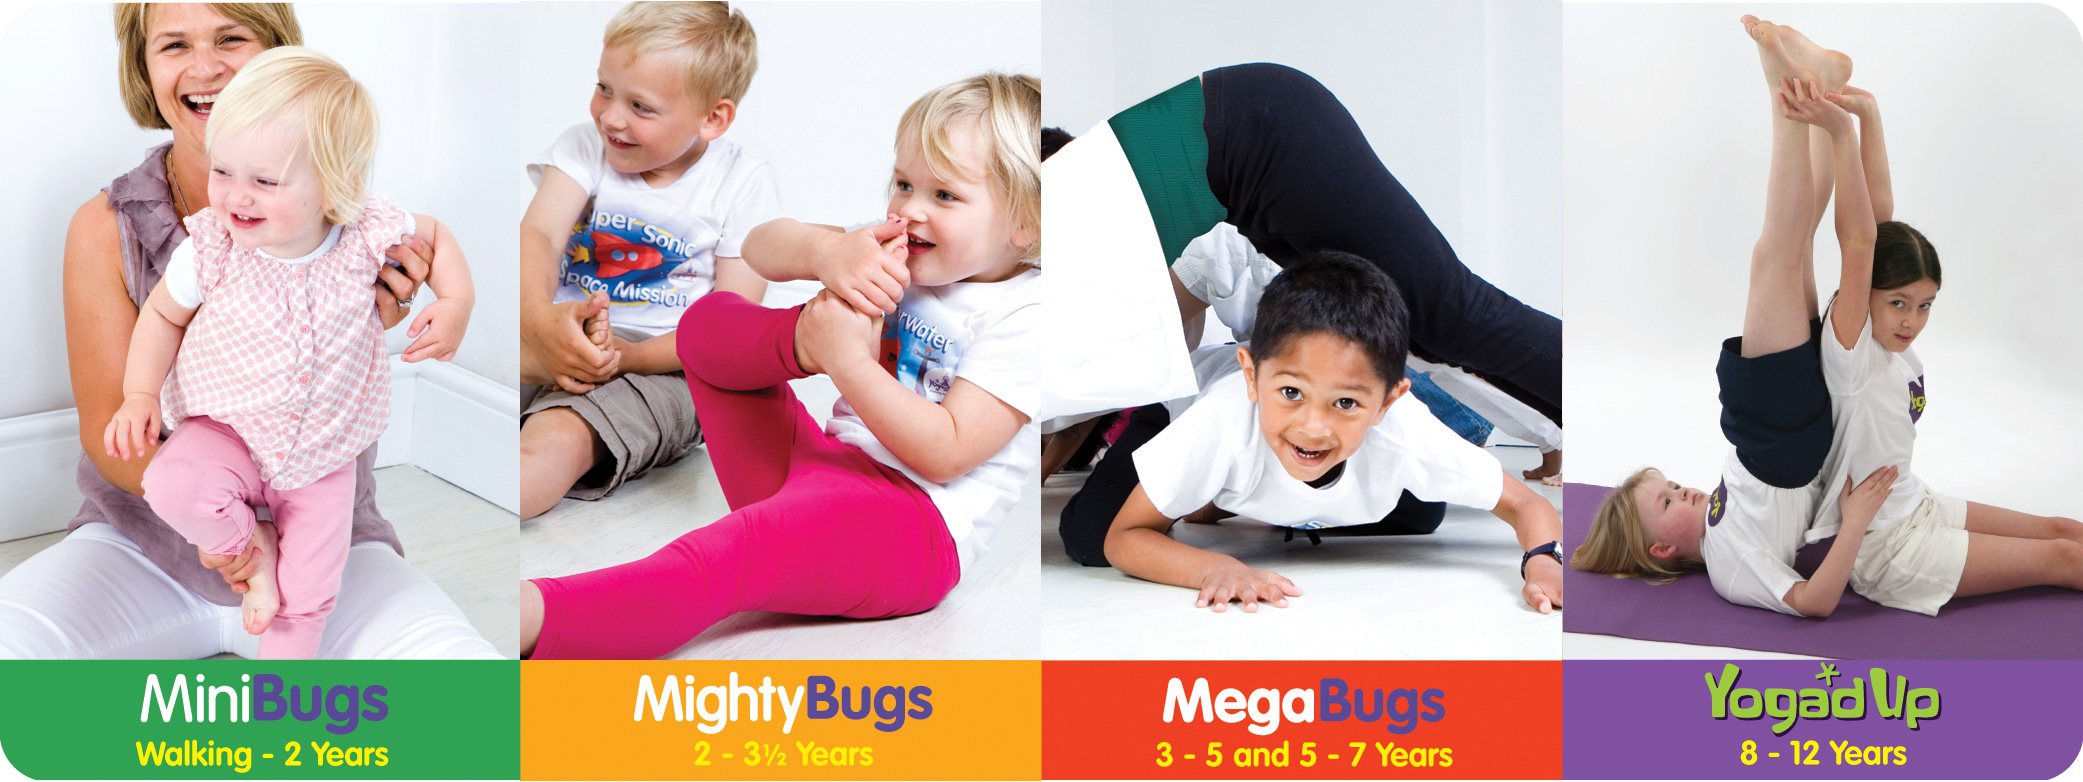 MiniBugs and MightyBugs